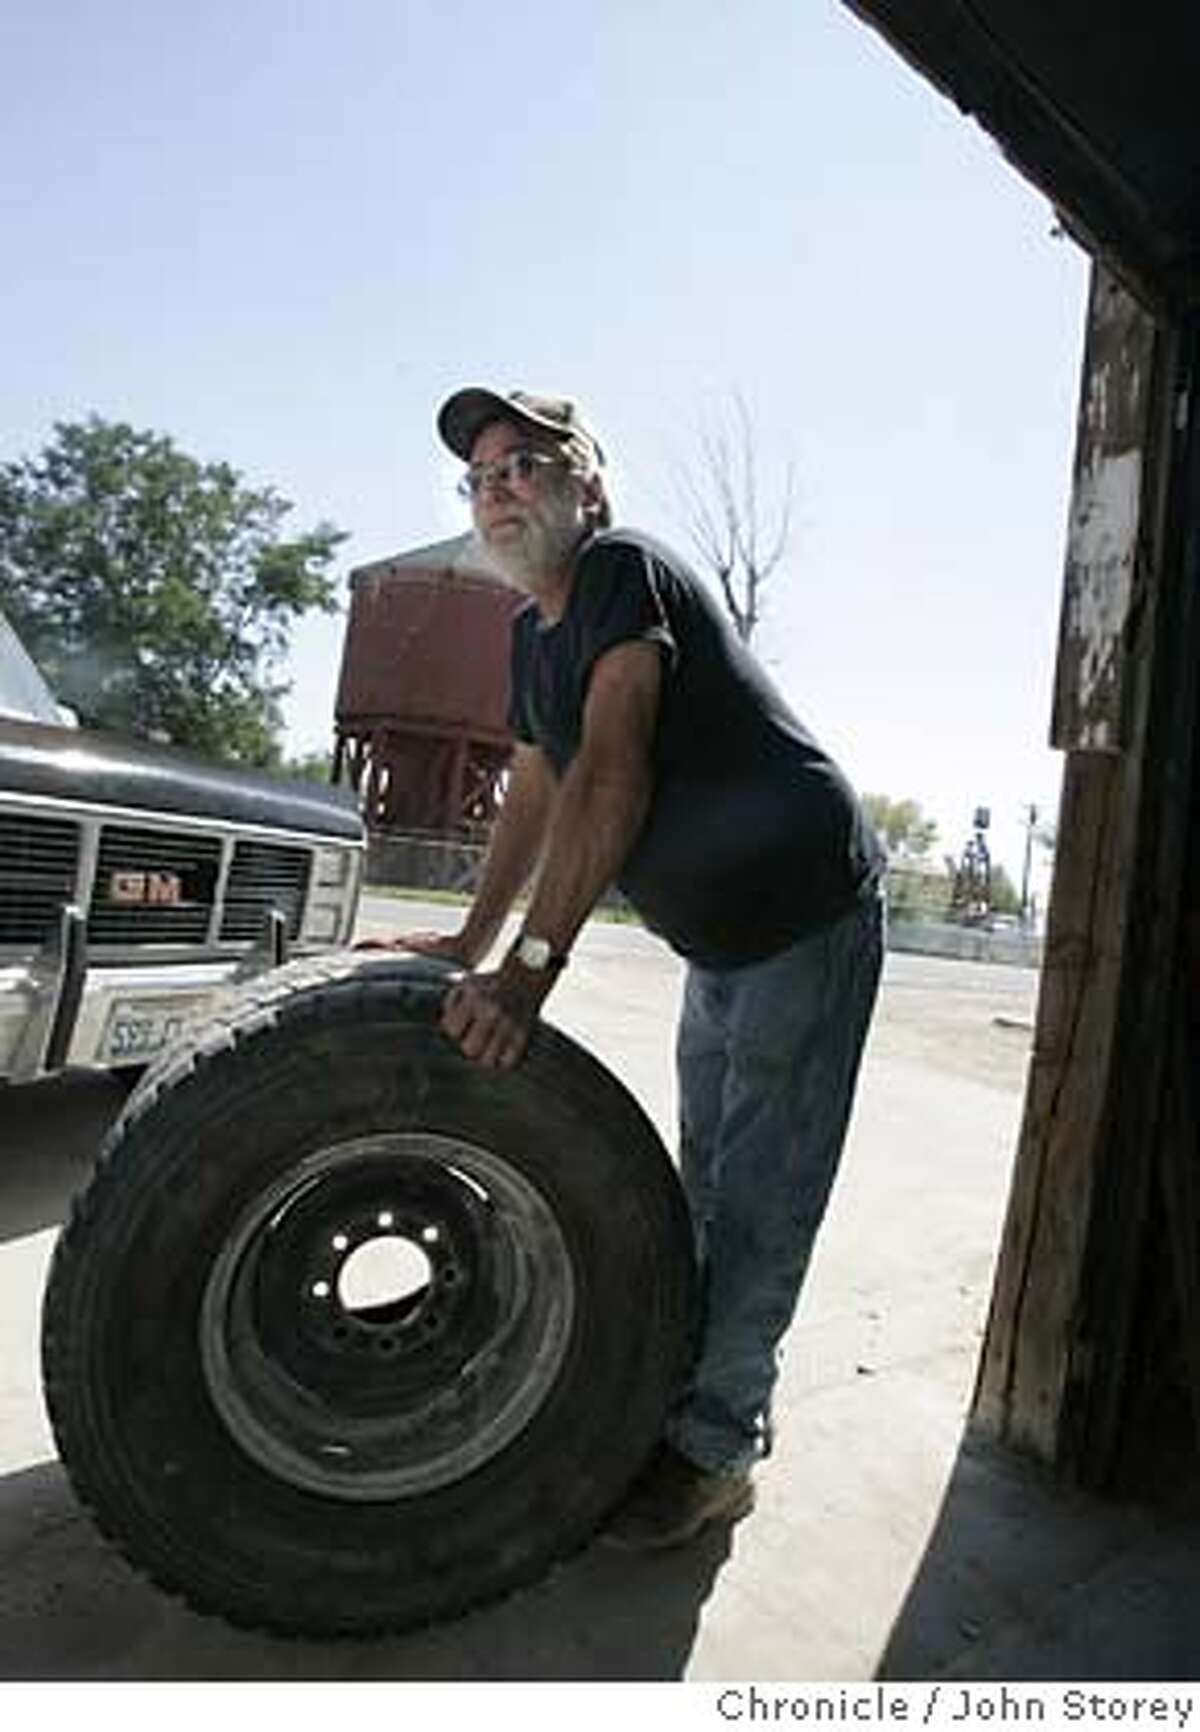 Gerlach_jrs_0100.jpg Everett gates holds a tire he had just repaired at the local auto repair shop. Story about the tiny town of Gerlach, which is the gateway to